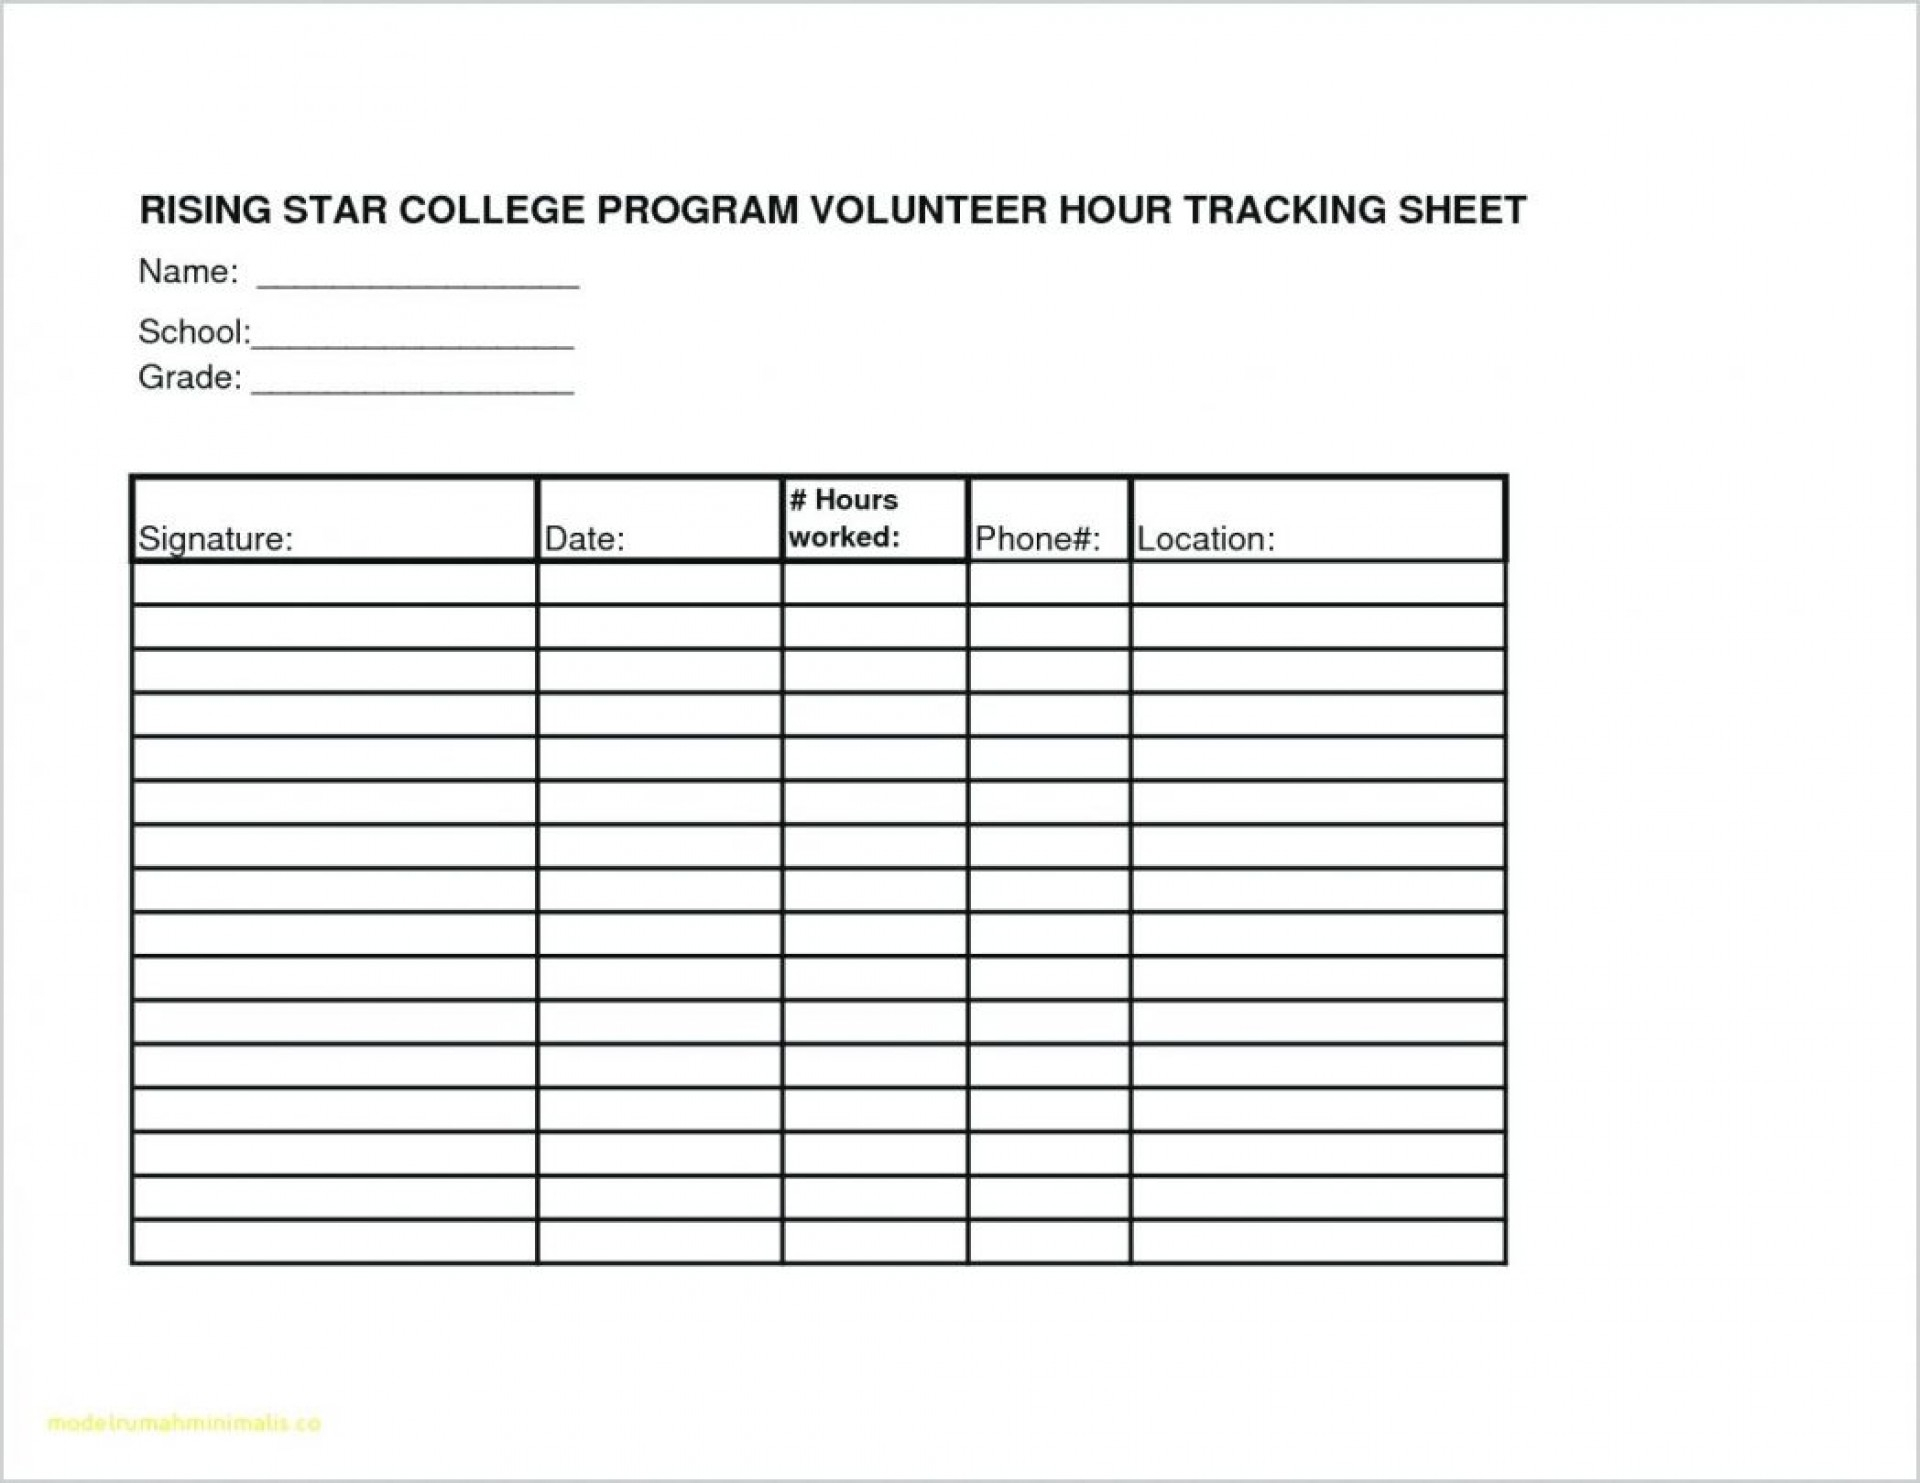 007 Volunteer Sign Up Sheet Template Shakeprint Form inside Bootstrap Calendar W3Schools